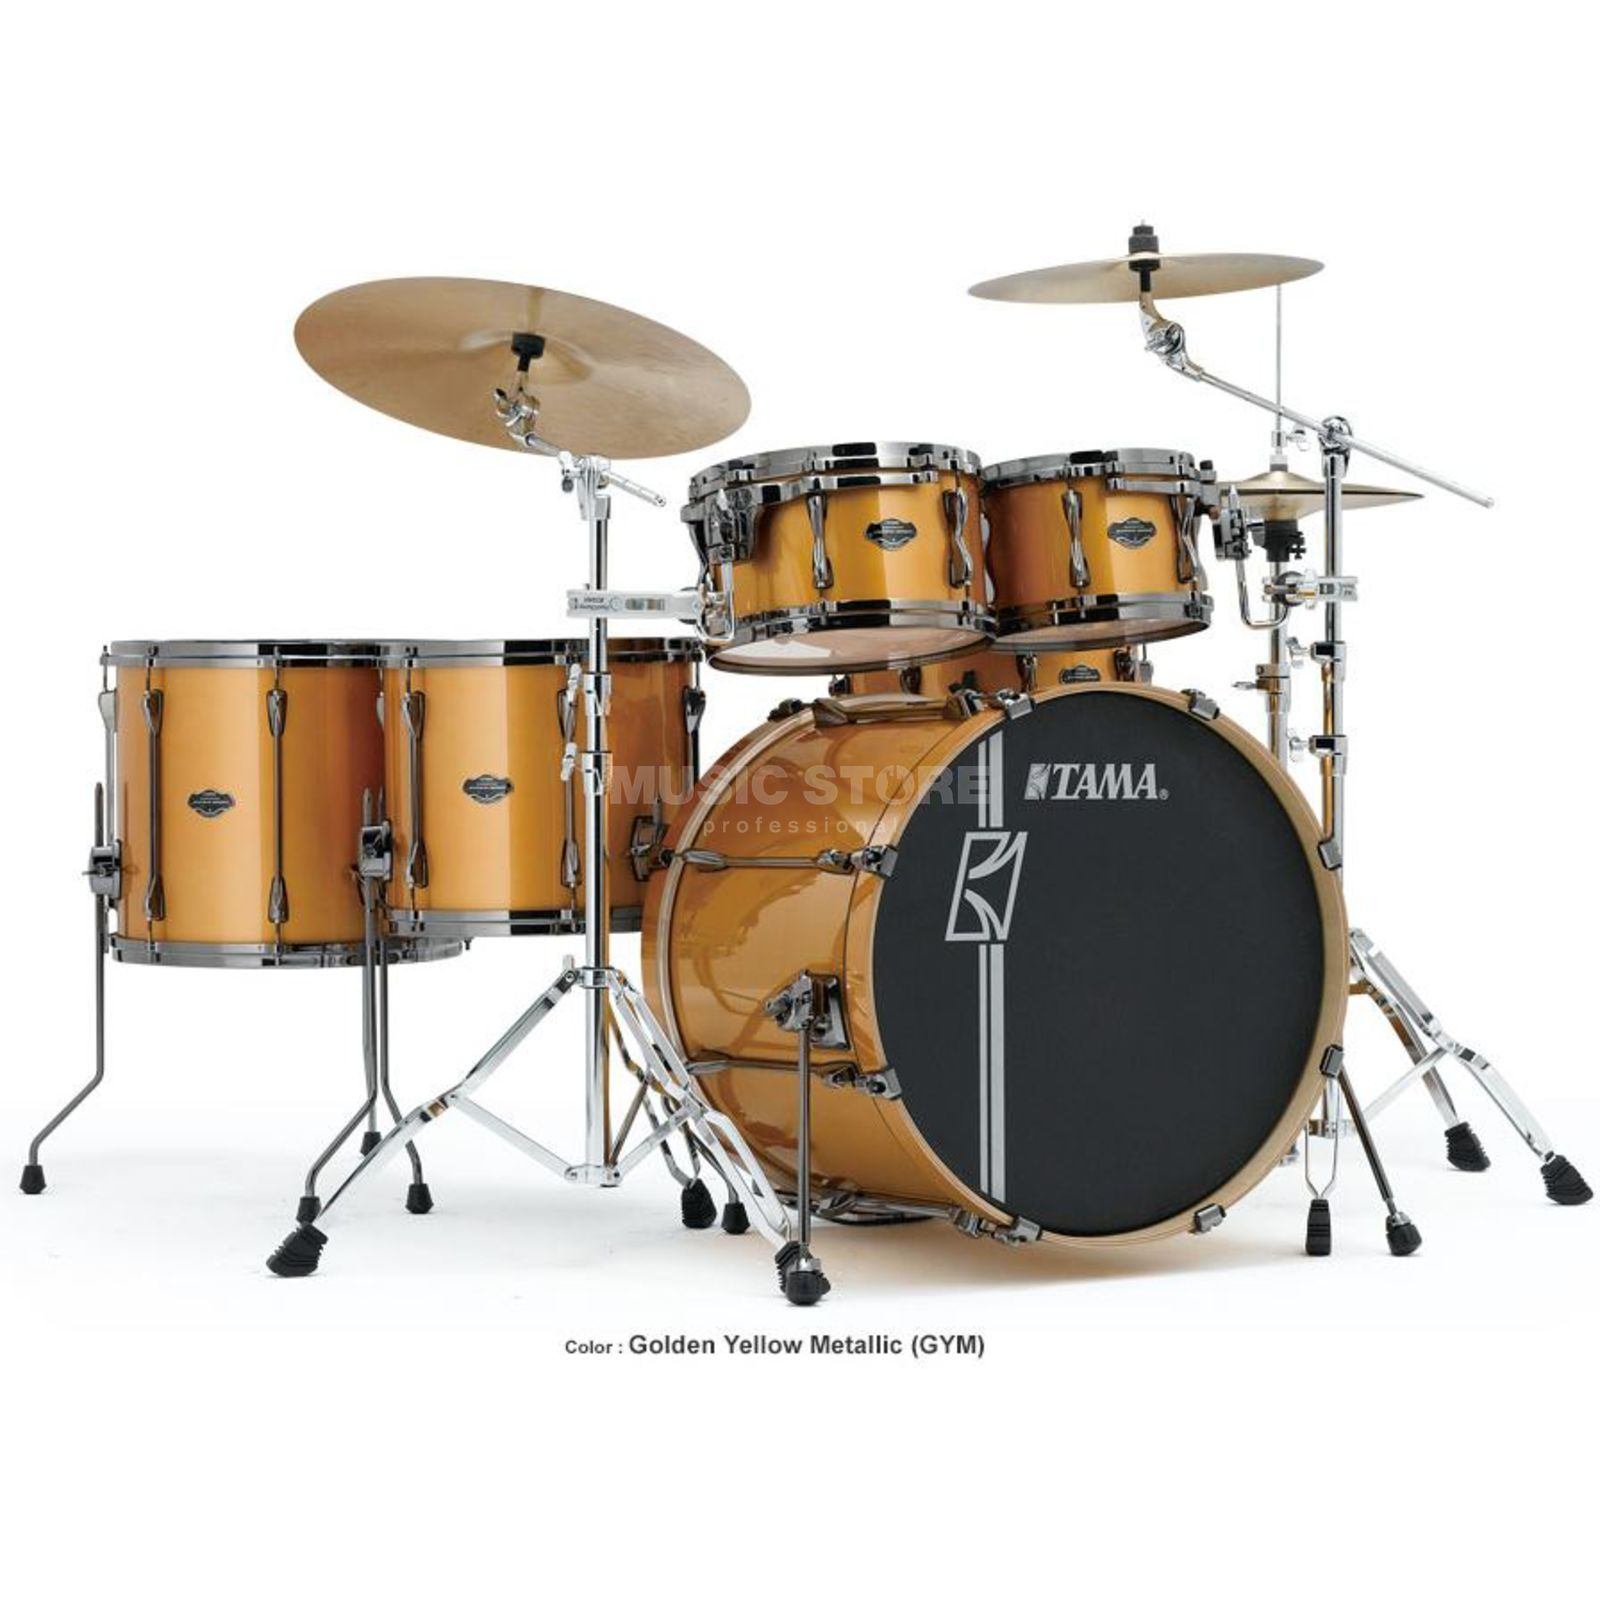 Tama Superstar HD Maple ML52HZBN, Golden Yellow Metallic, GYM Product Image